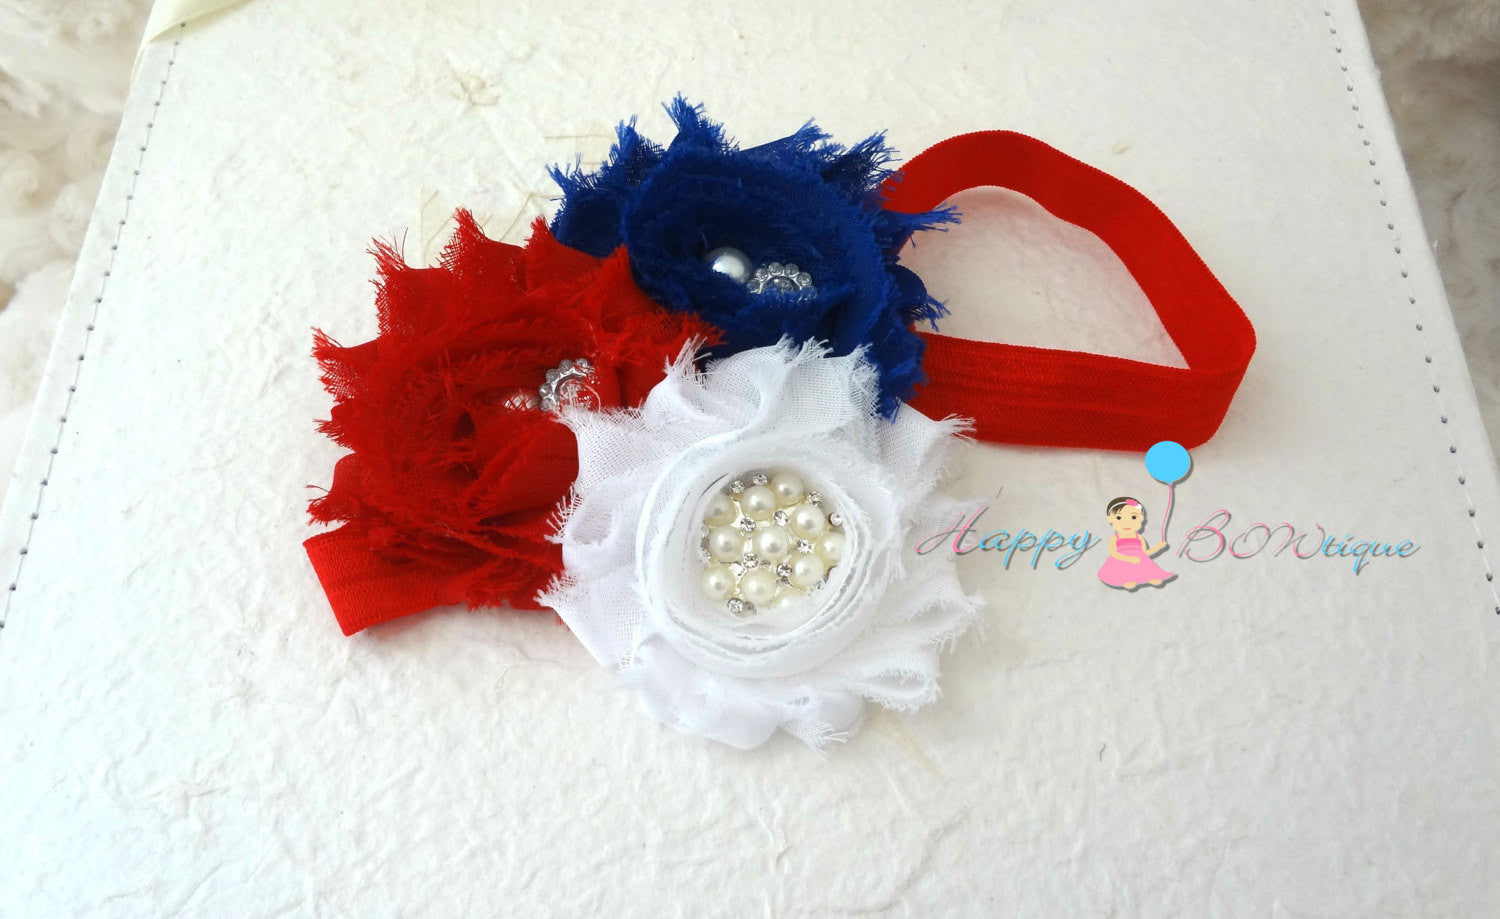 4th of July Trio Shabby Cluster headband, Baby girl headband, newborn headband,  photo props, birthday headband, 4th of july, USA - Happy BOWtique - children's clothing, Baby Girl clothing